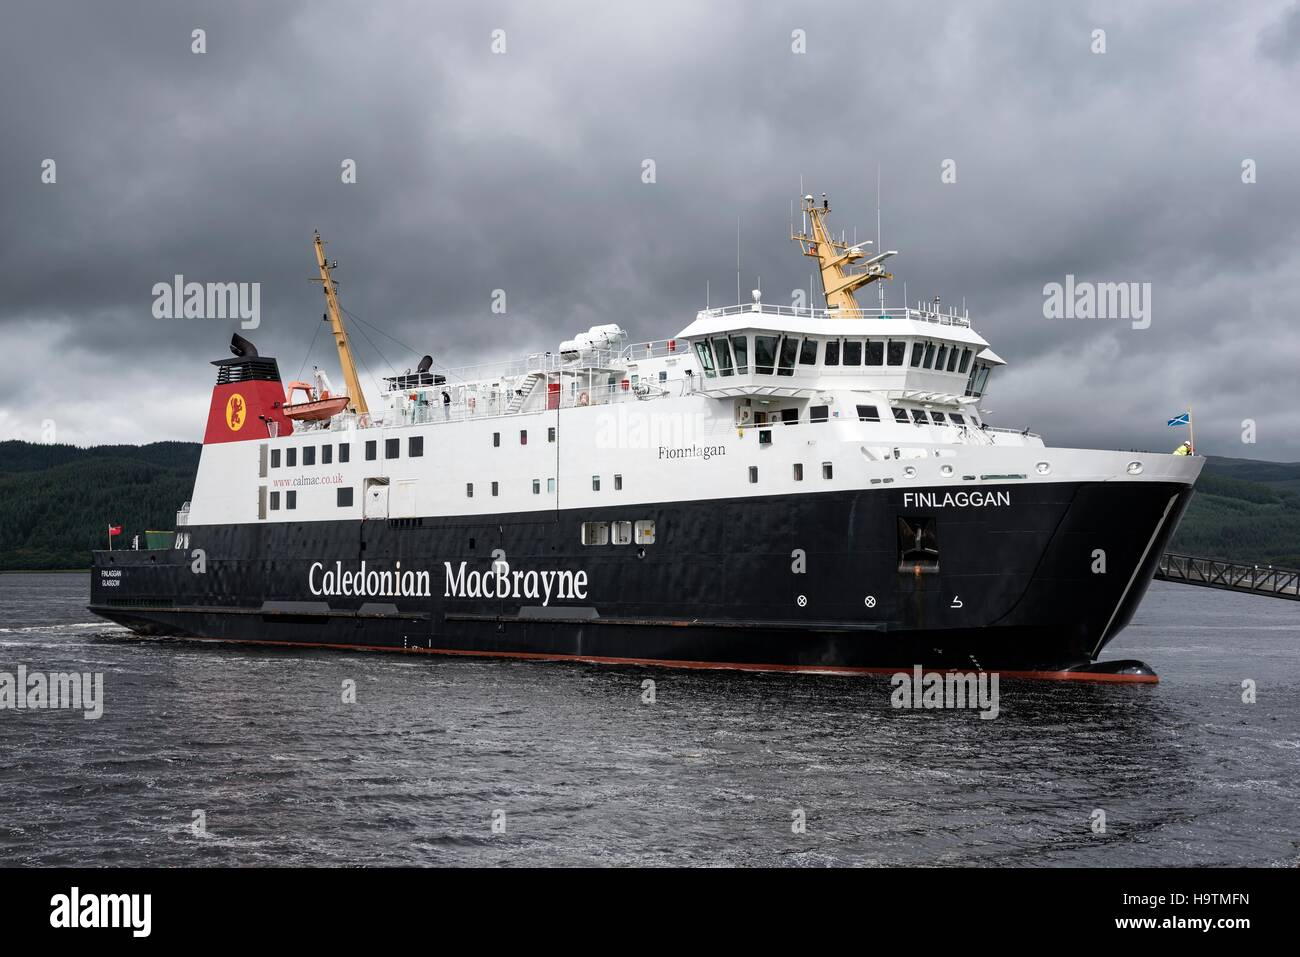 The Ferry Finlaggan, Ferry between Scotland and the Isle of Islay, Tarbert, Argyll and Bute, Scotland, United Kingdom Stock Photo